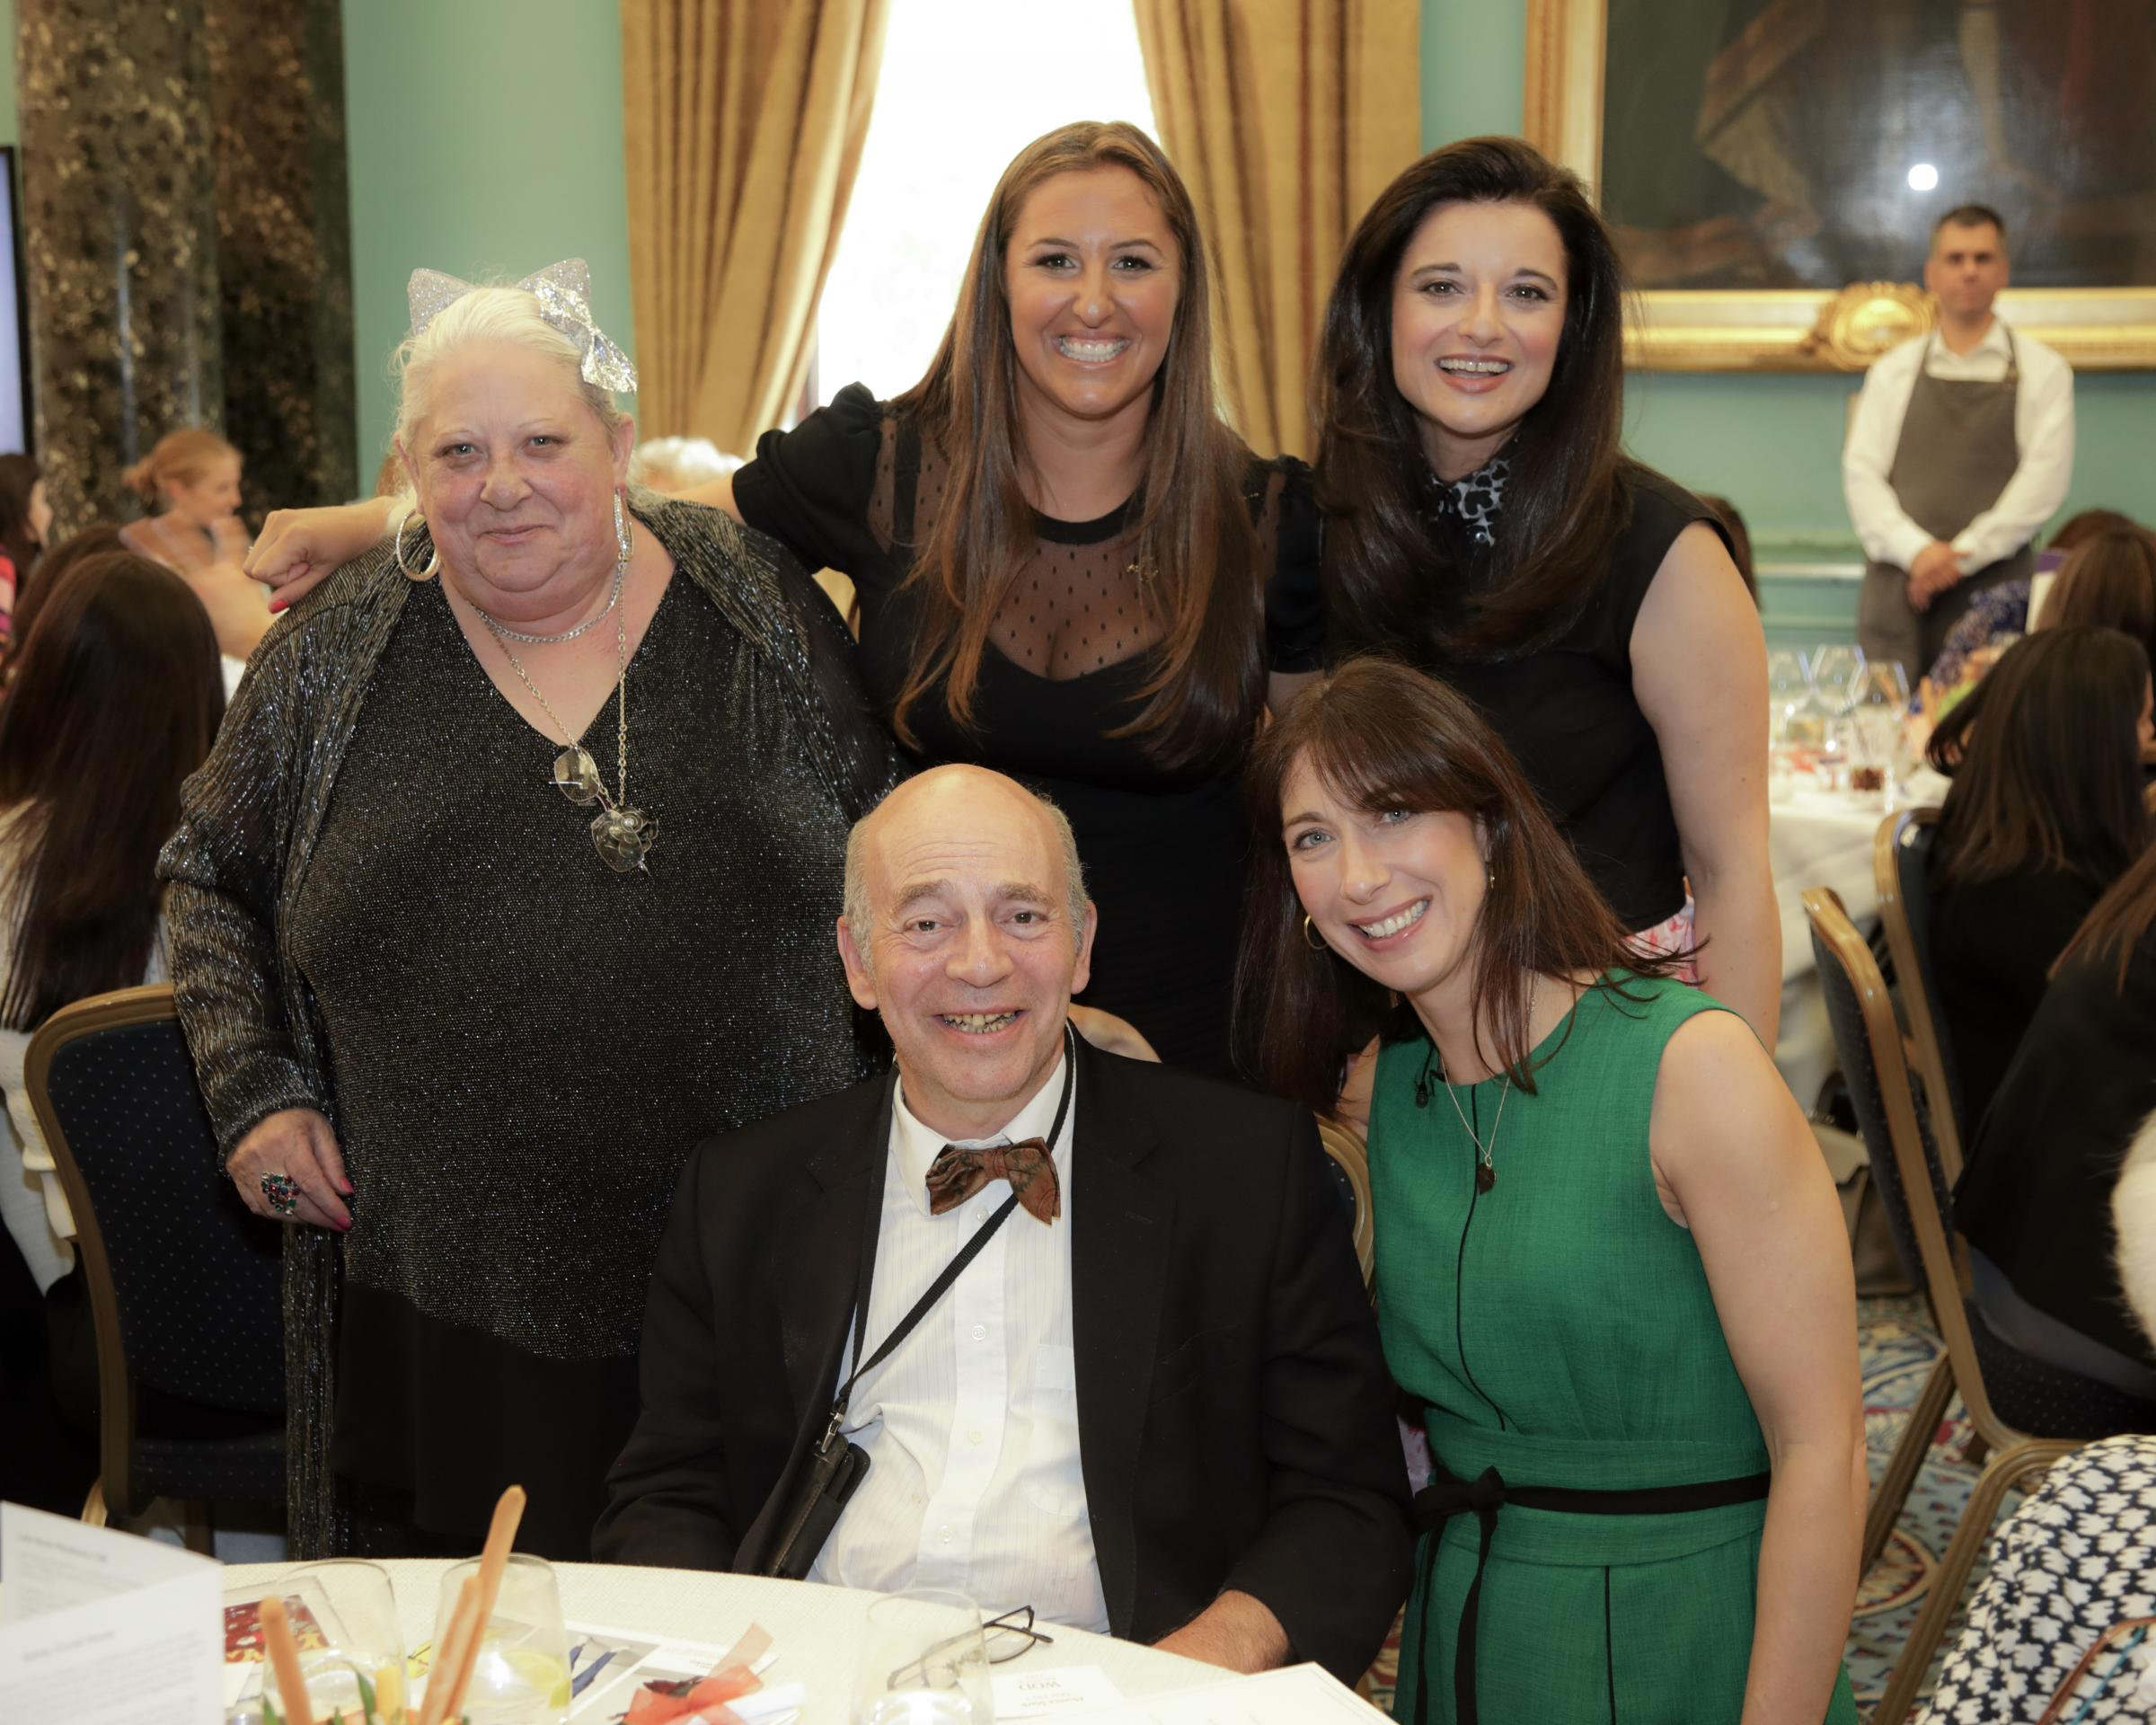 Mark with former Sidney Carob resident Susan with Samantha Cameron, Danielle Lipton and Danielle Hess